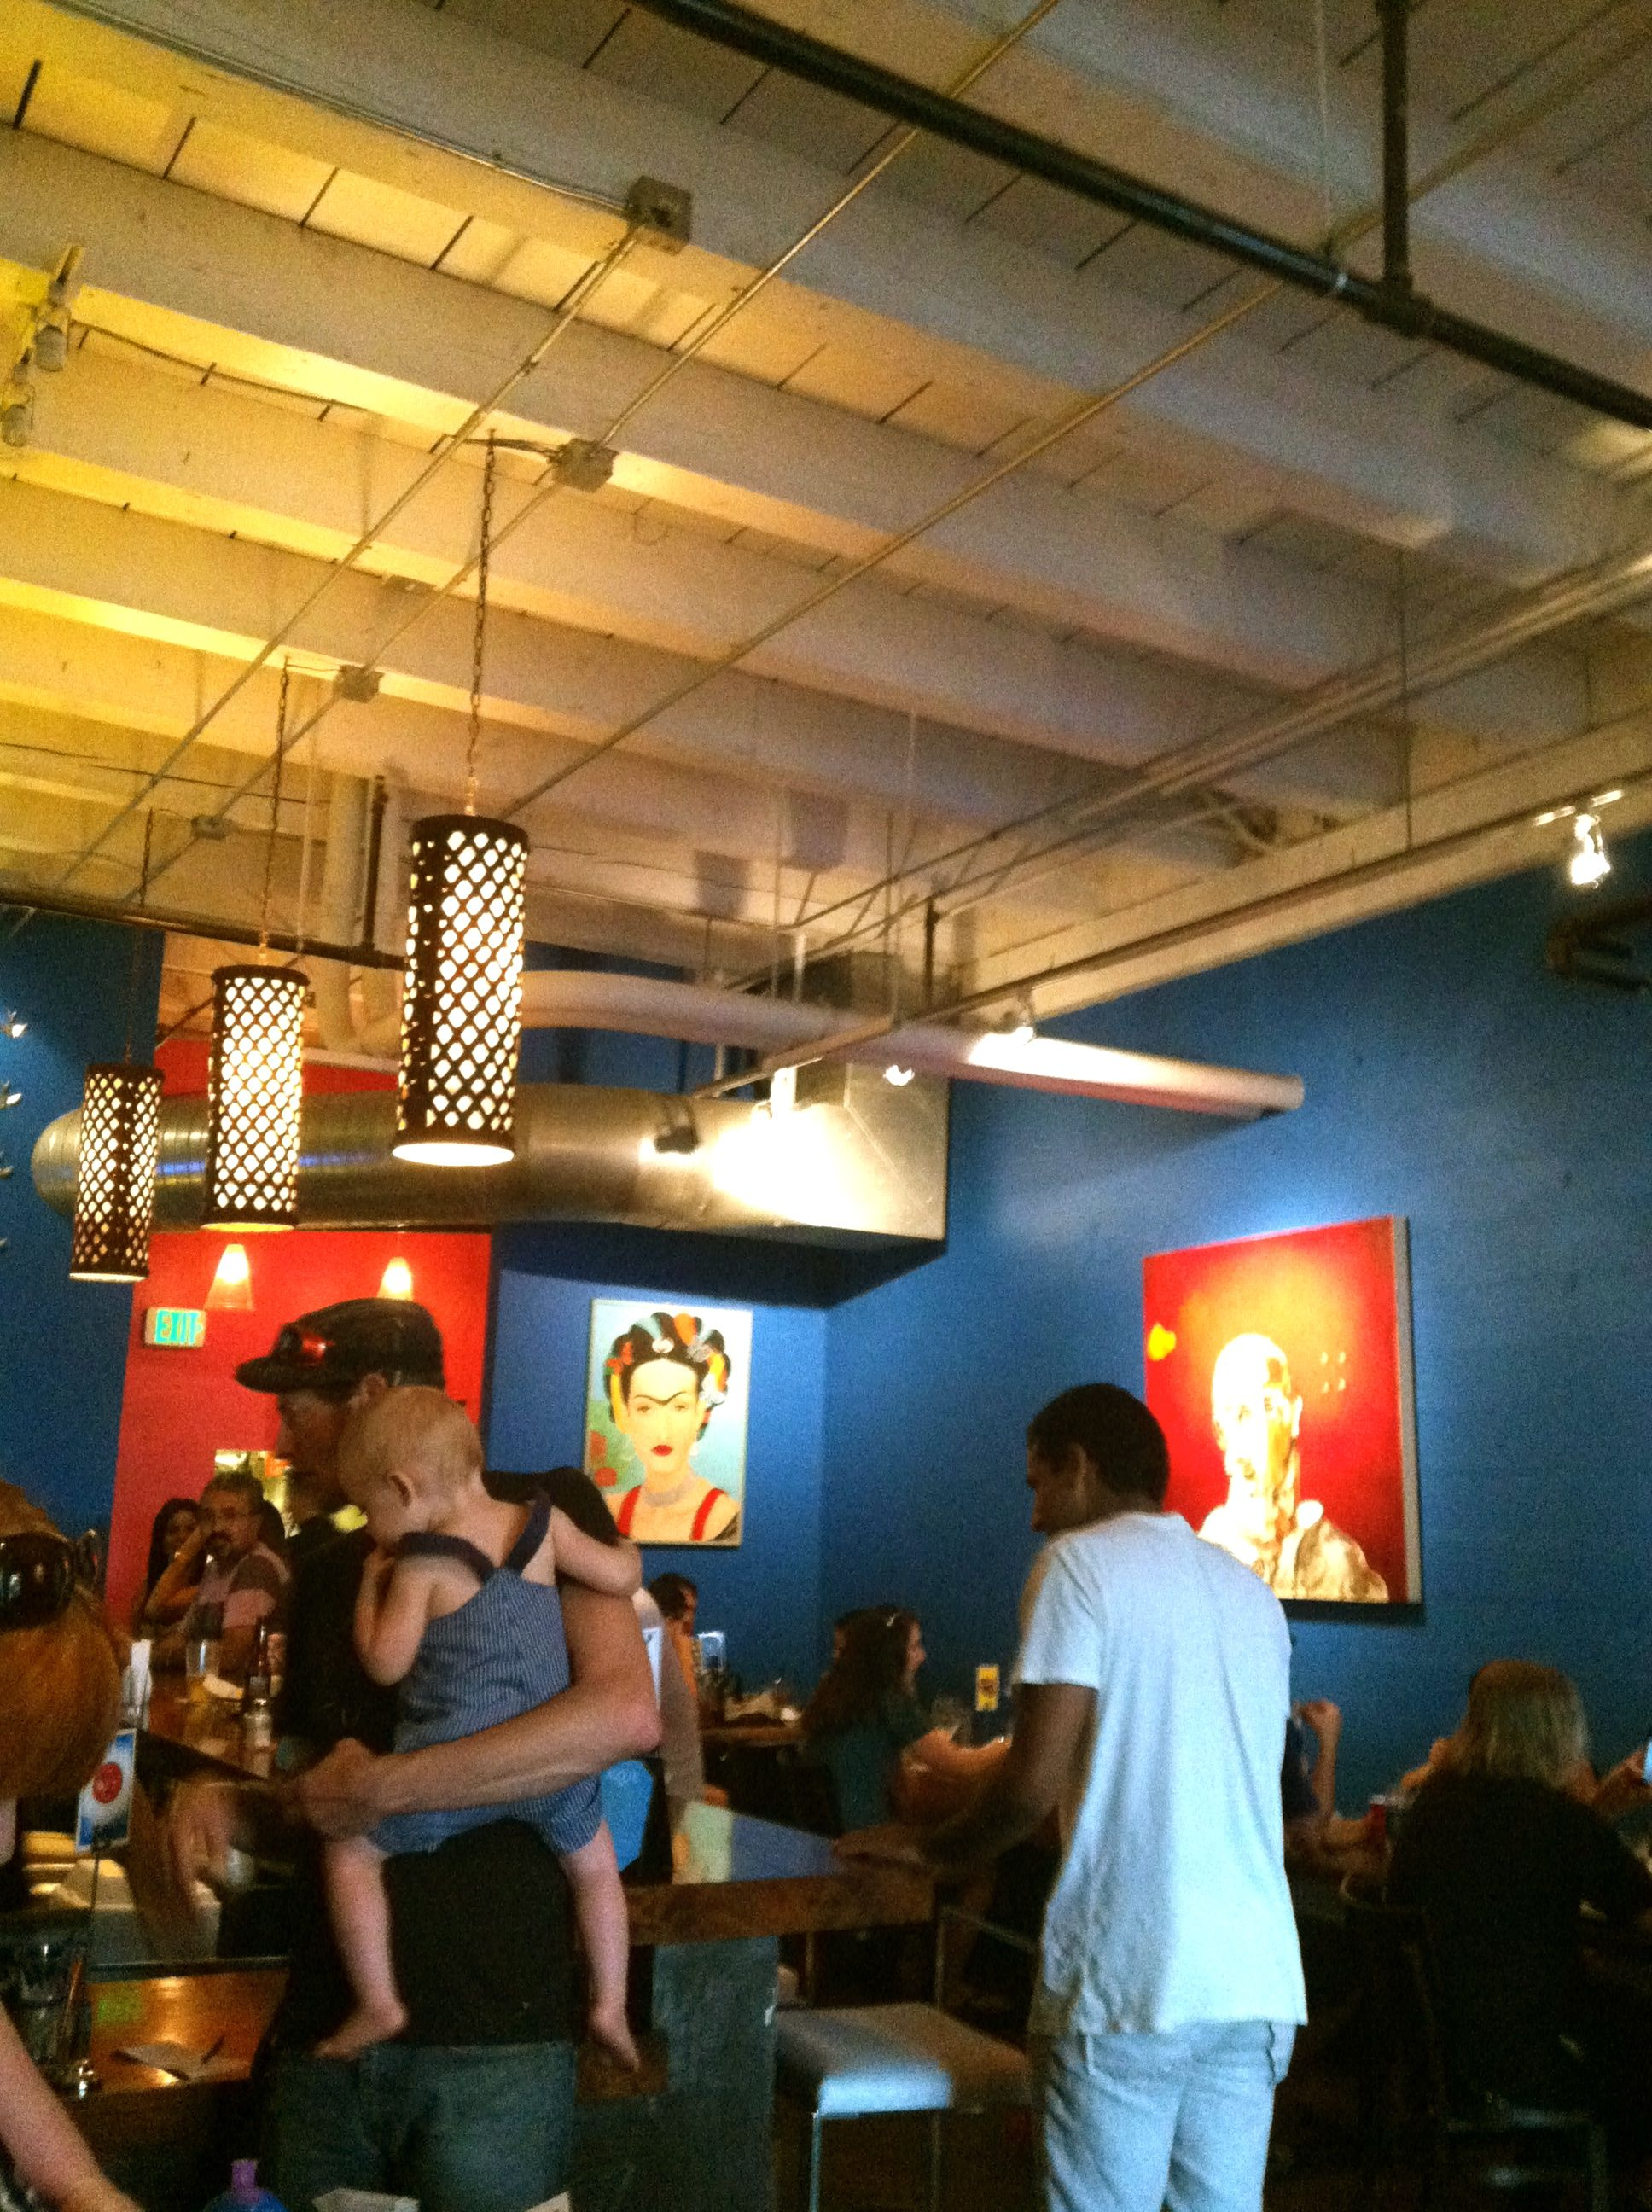 Azul mexican food tequila bar decorated with art and